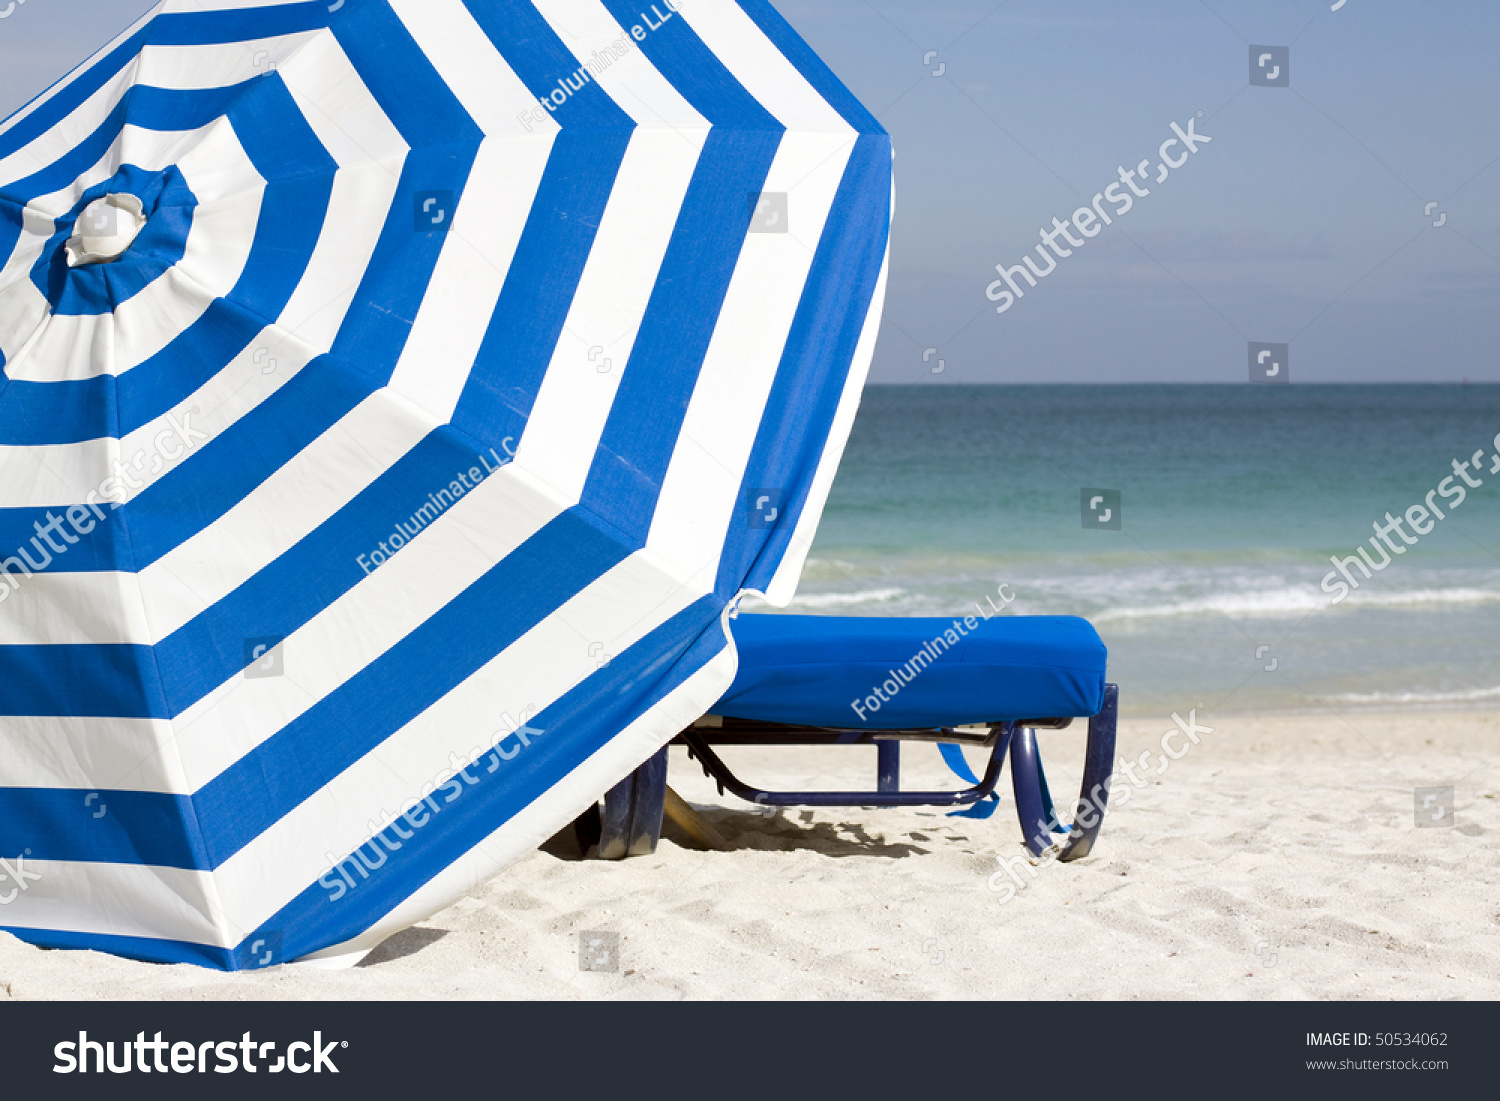 Beach chair and umbrella set - Image Of Blue Lounge Chair And Blue And White Striped Umbrella Set Against The South Beach